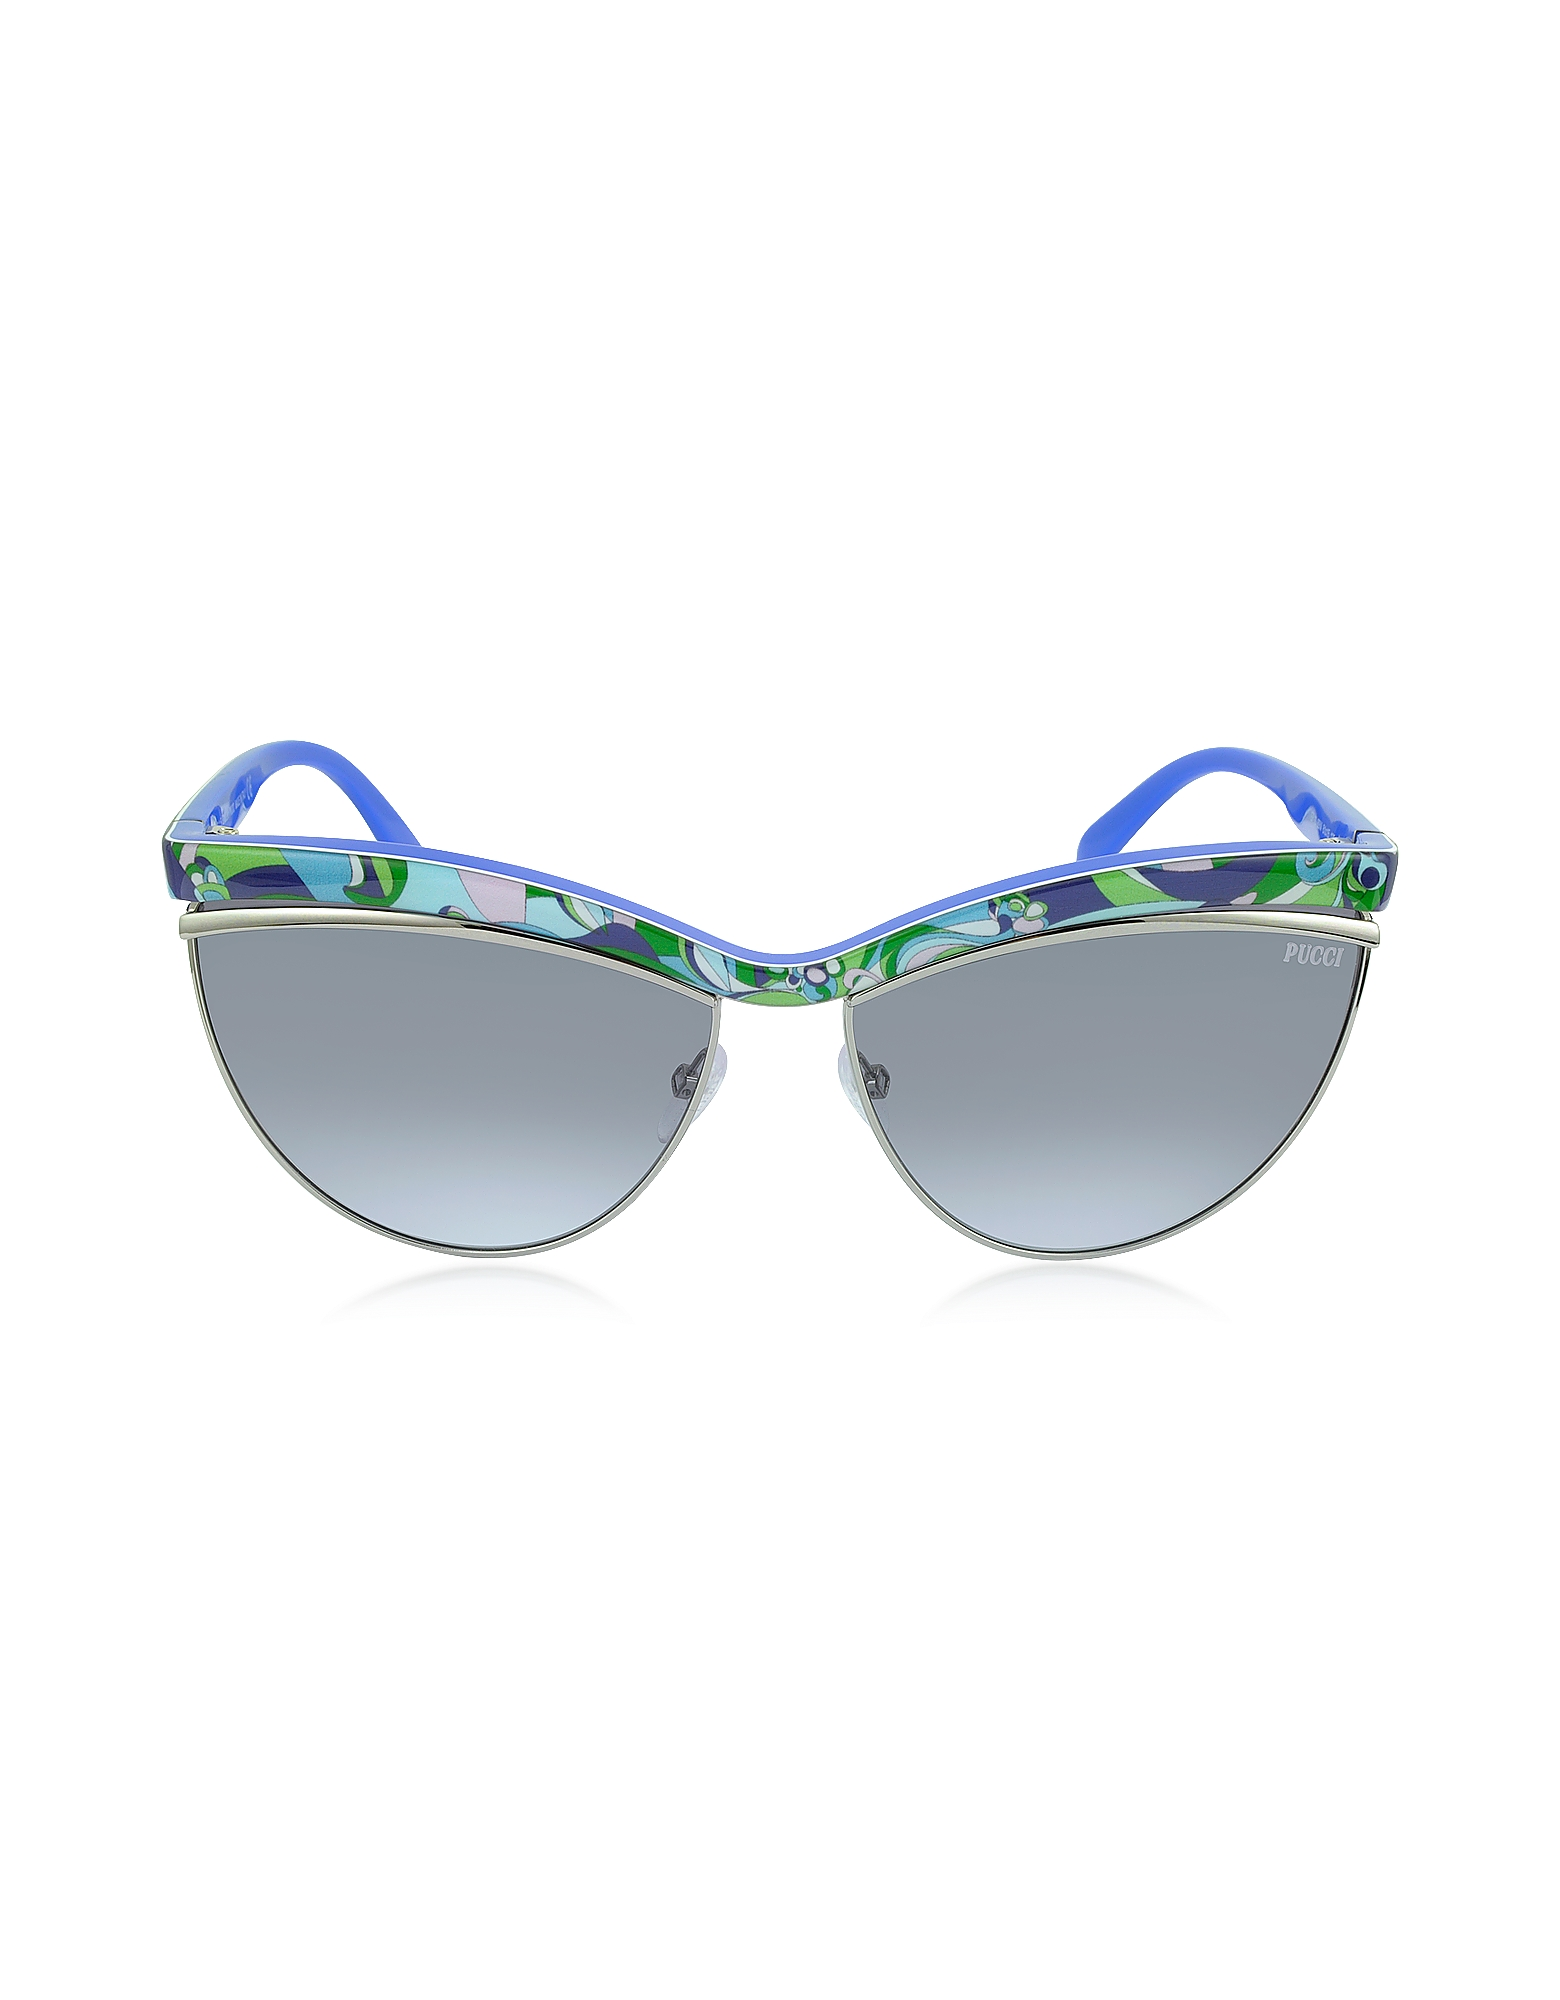 Emilio Pucci Sunglasses, EP0010 Fantasy Acetate Cat Eye Women's Sunglasses